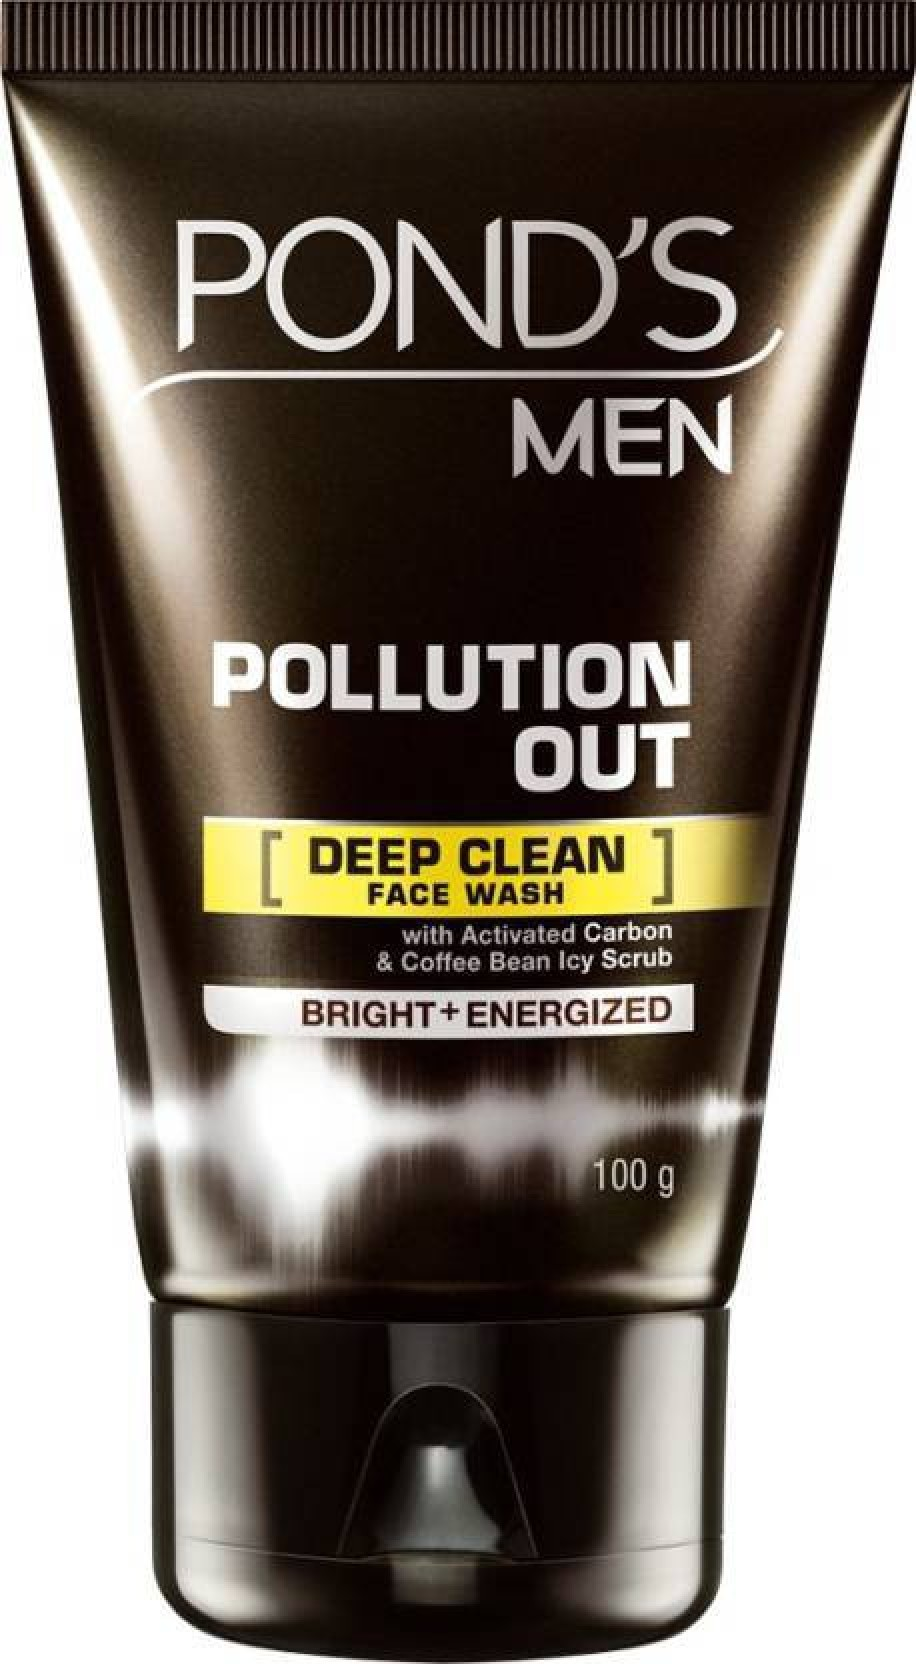 Ponds Men Pollution Out Face Wash Price In India Buy Energy Charge Cream 20ml Add To Basket